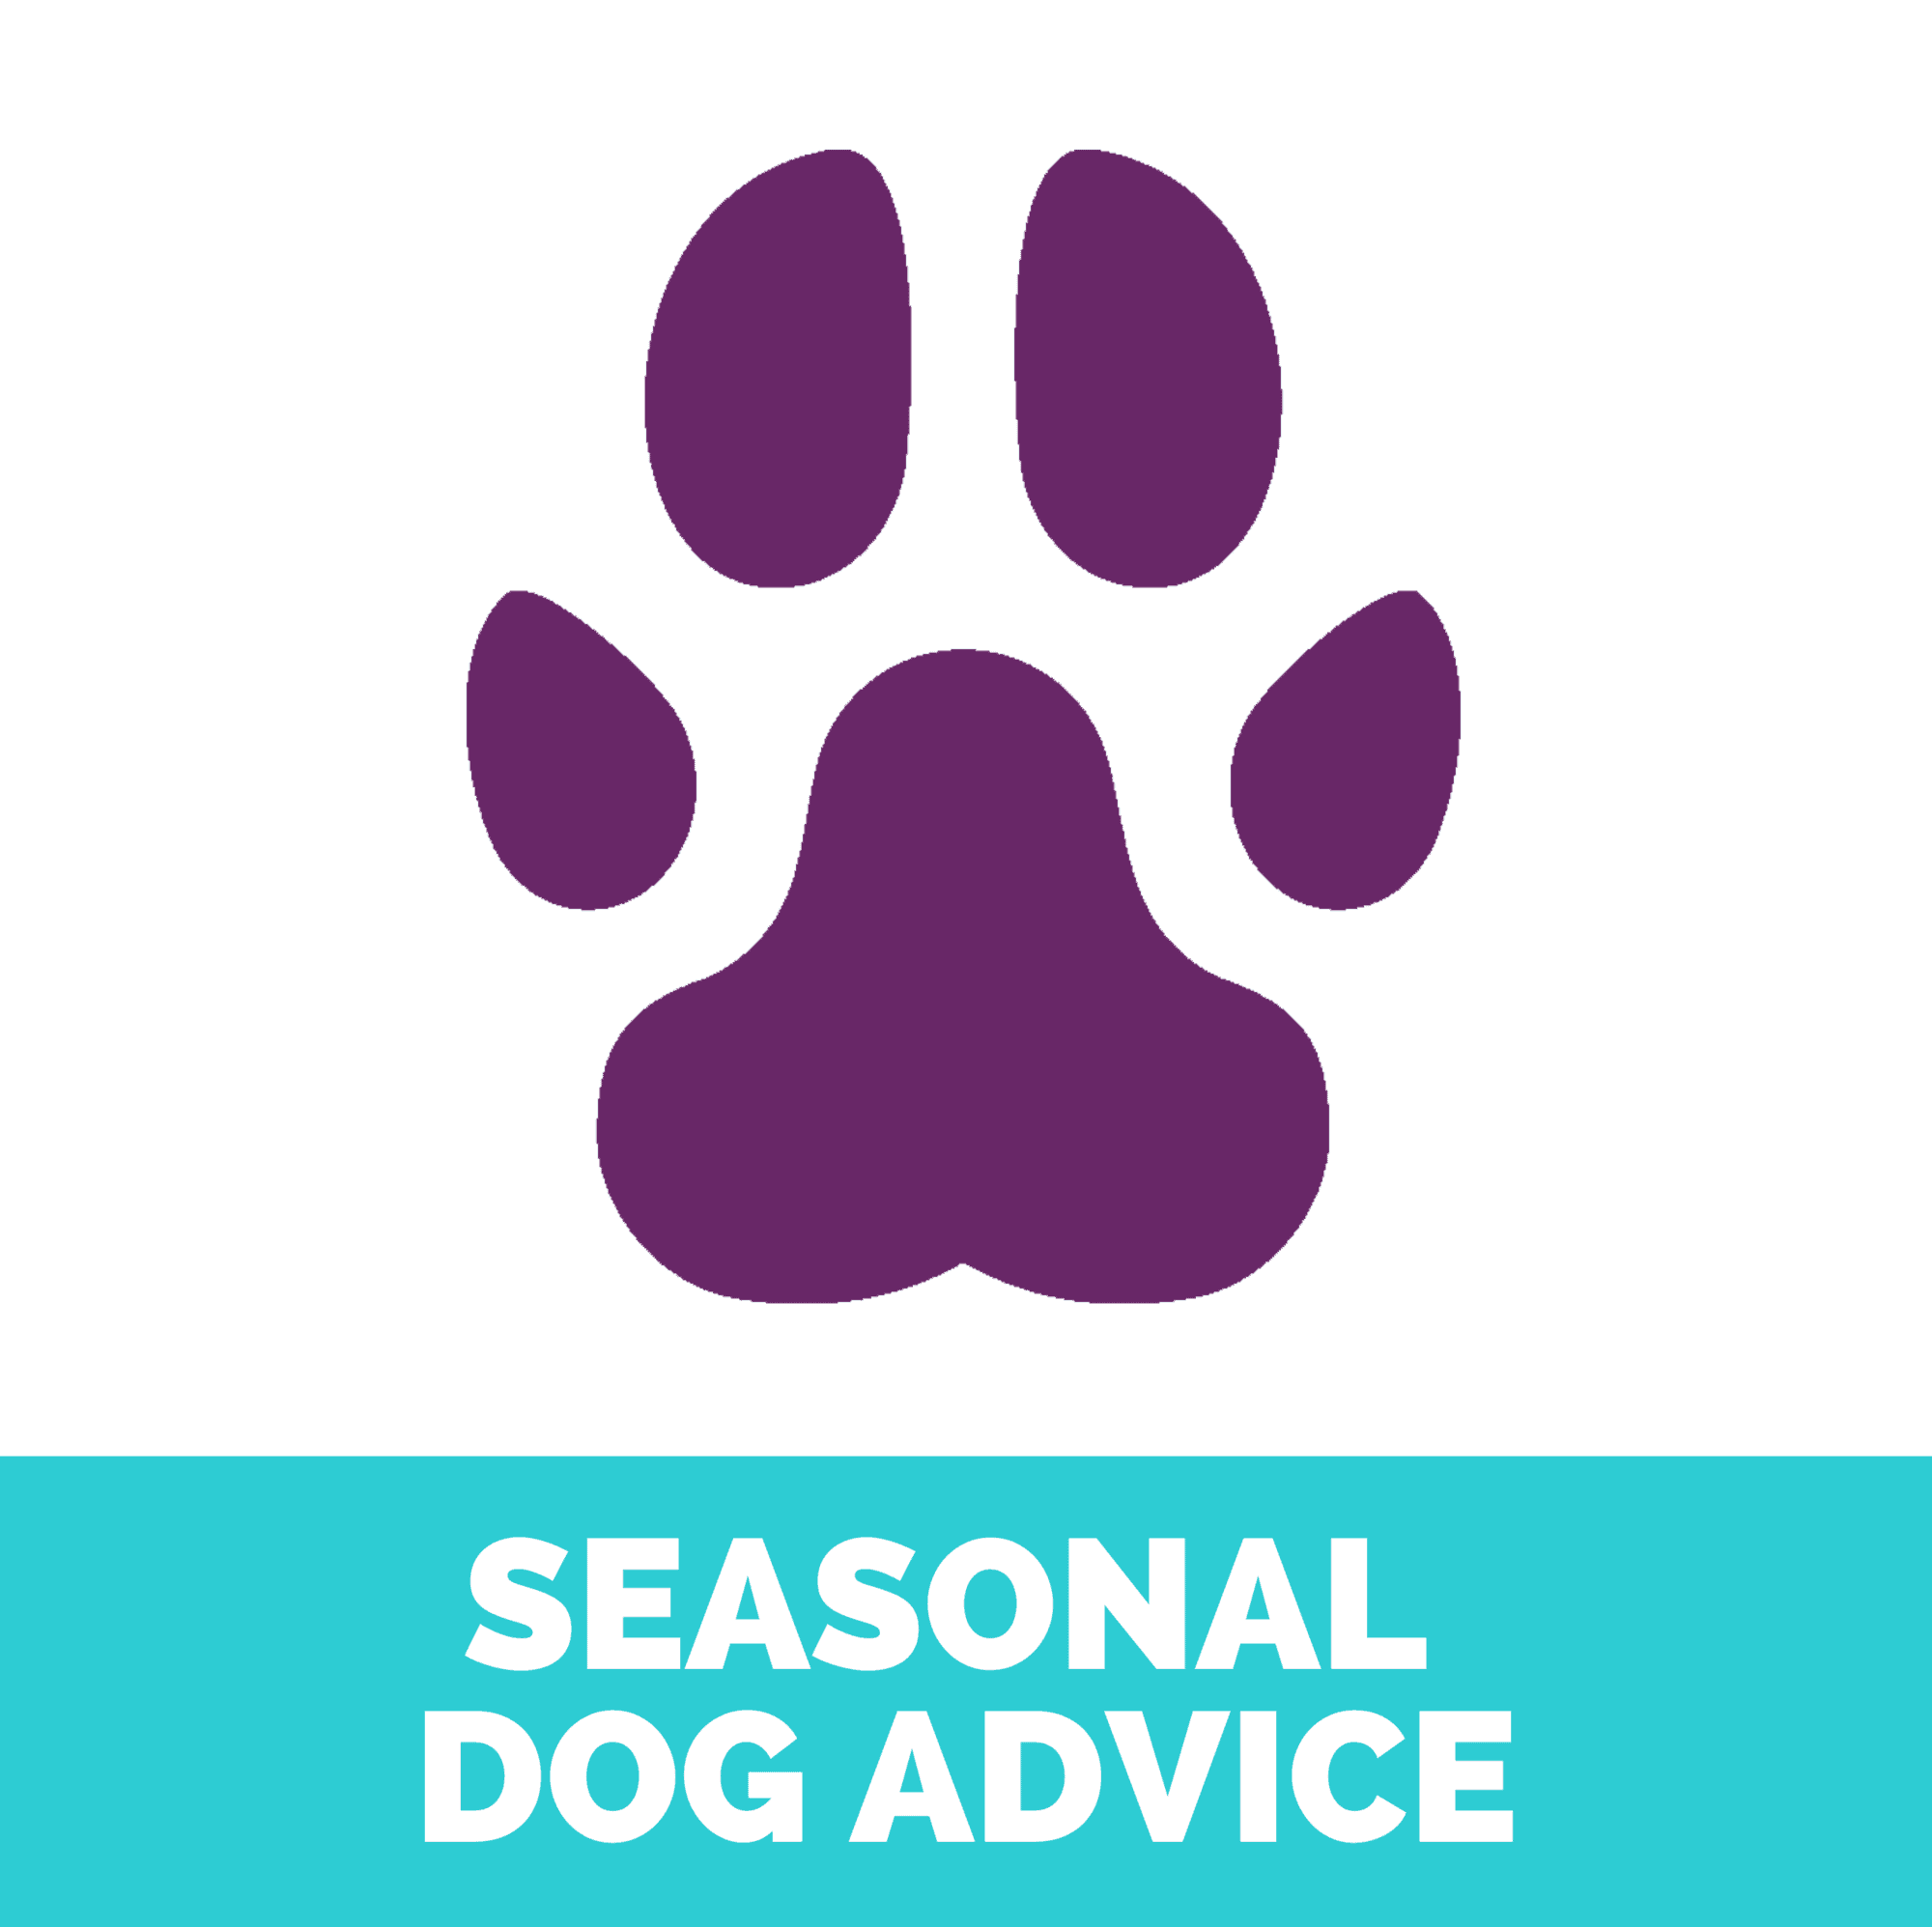 Seasonal dog advice